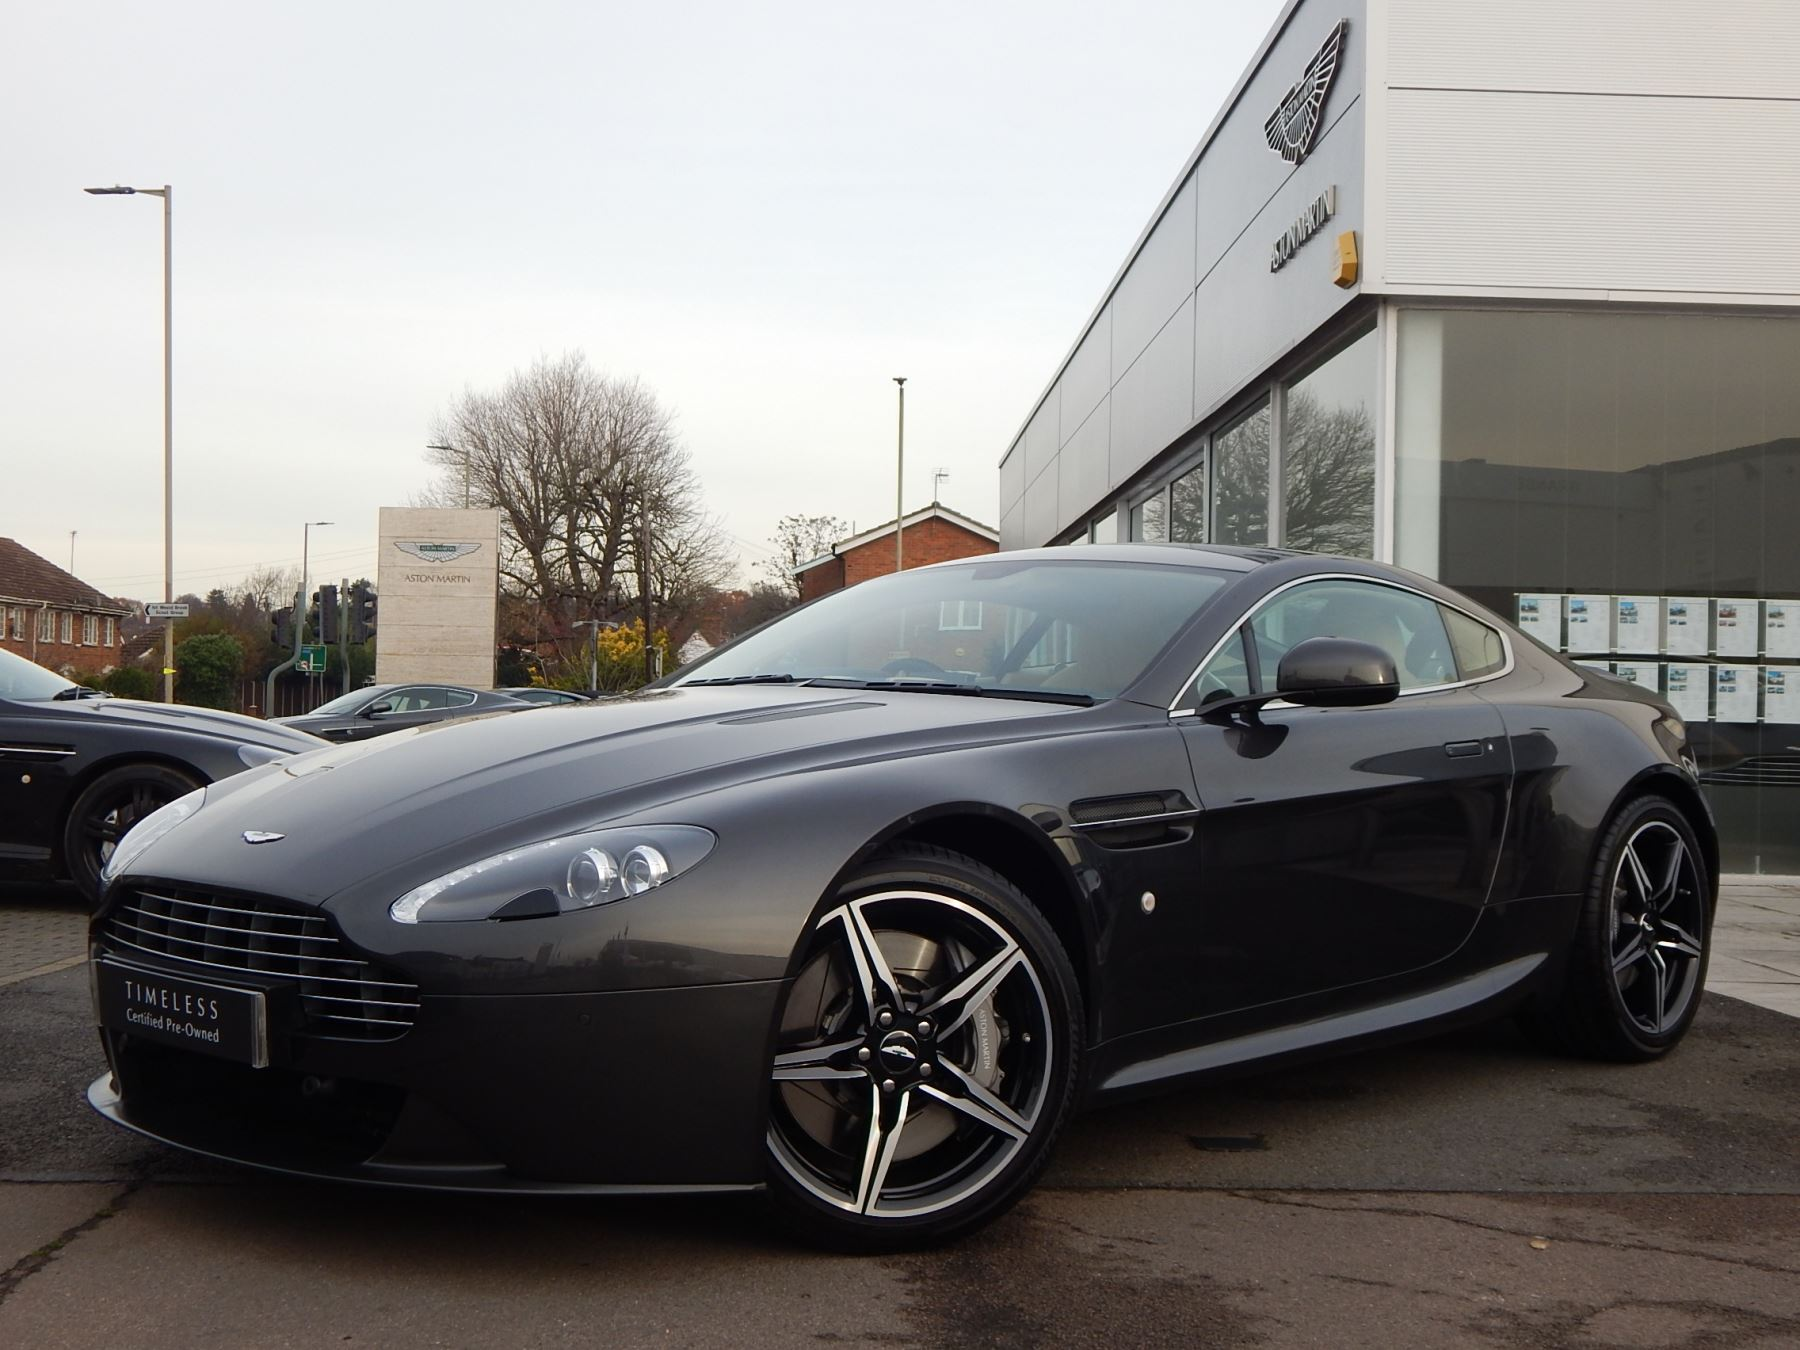 Aston Martin V8 Vantage Coupe 4.7 Coupe Sports Shift 2 door (2016)